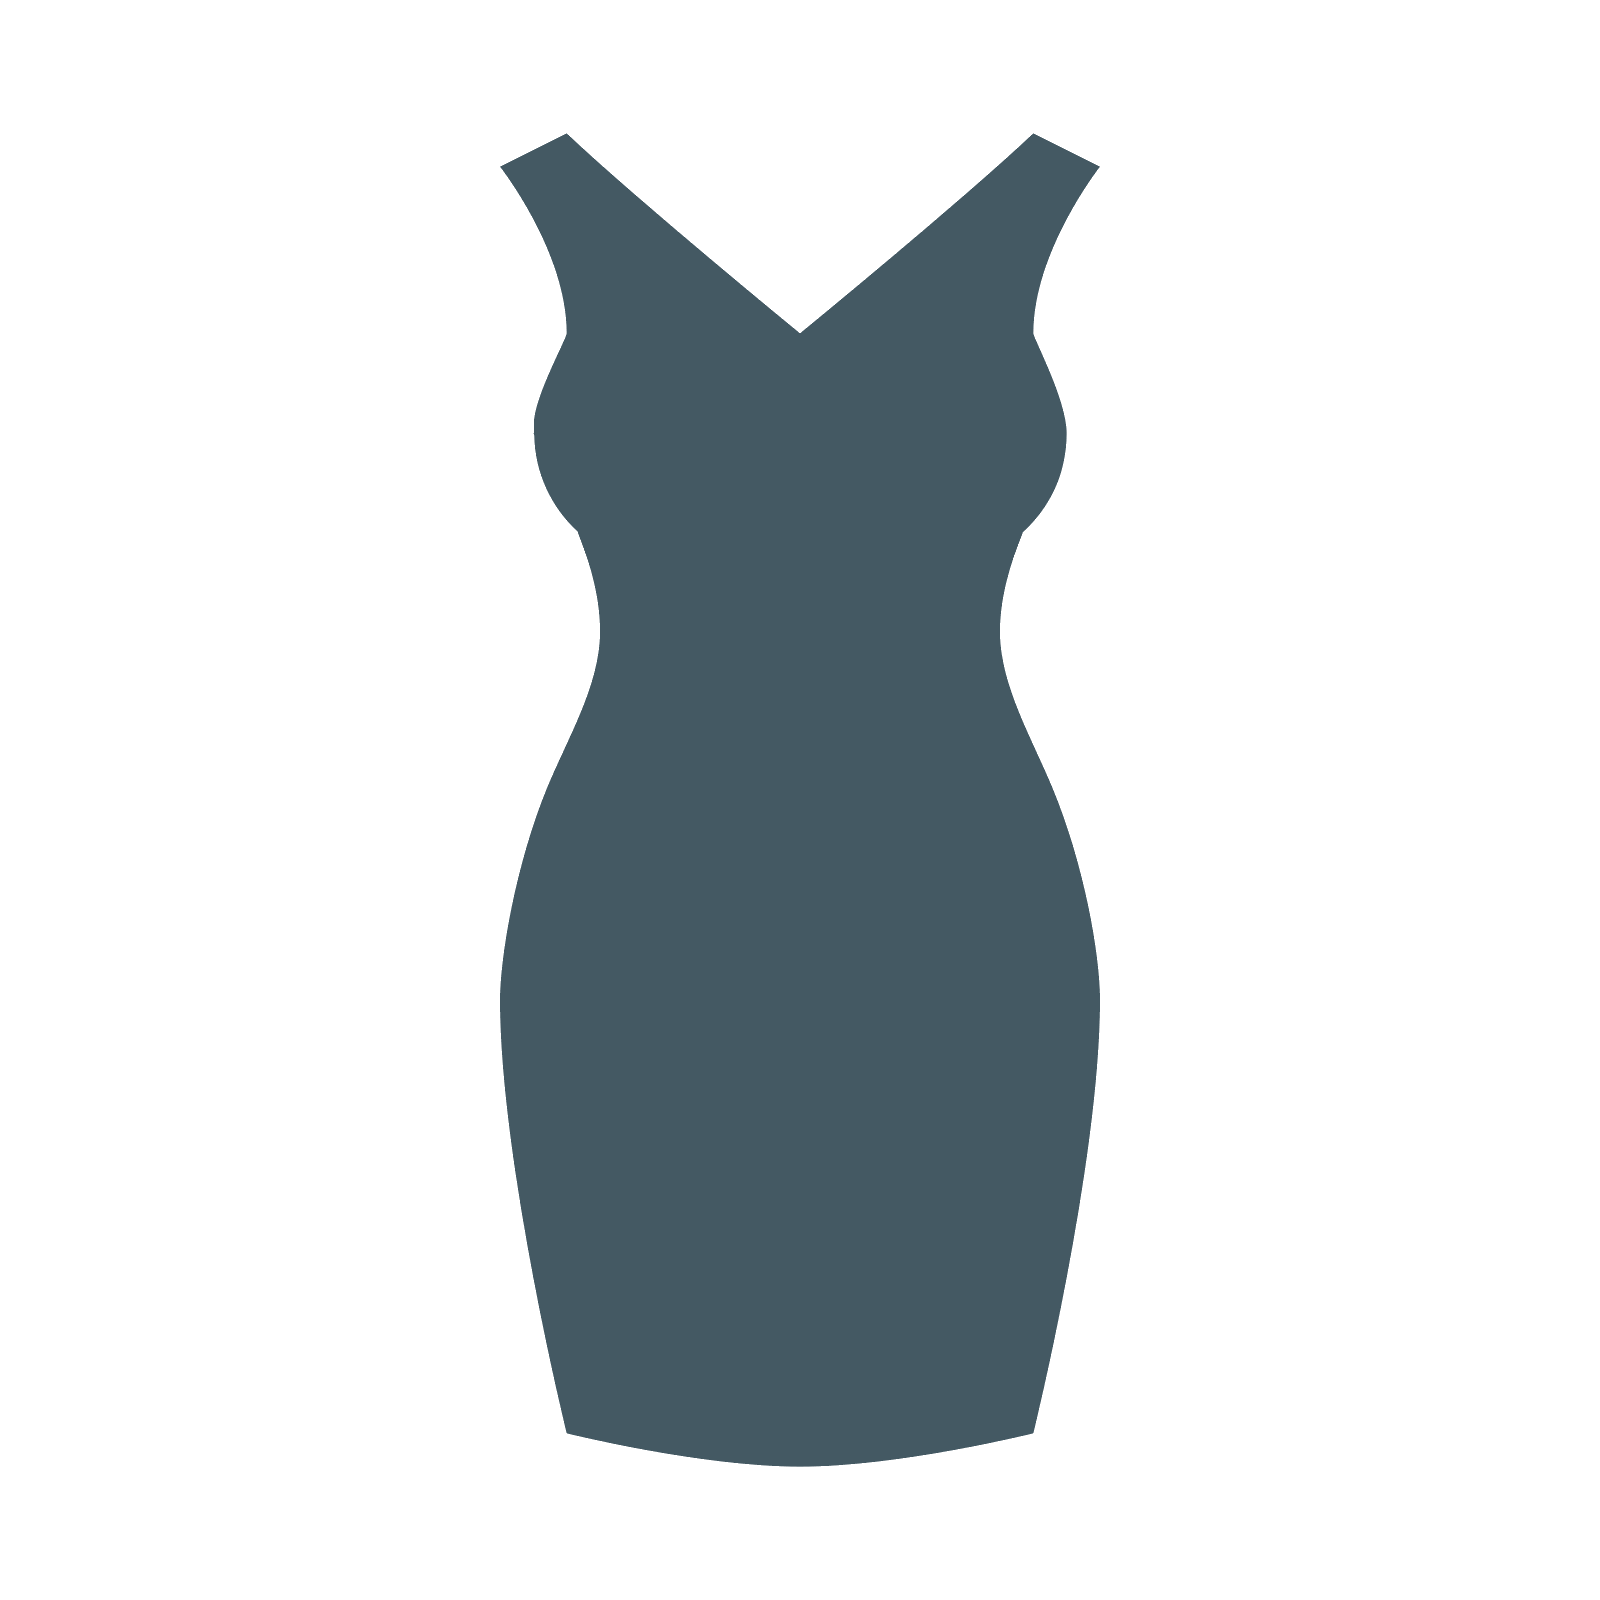 Dress vector png. Little black icon free